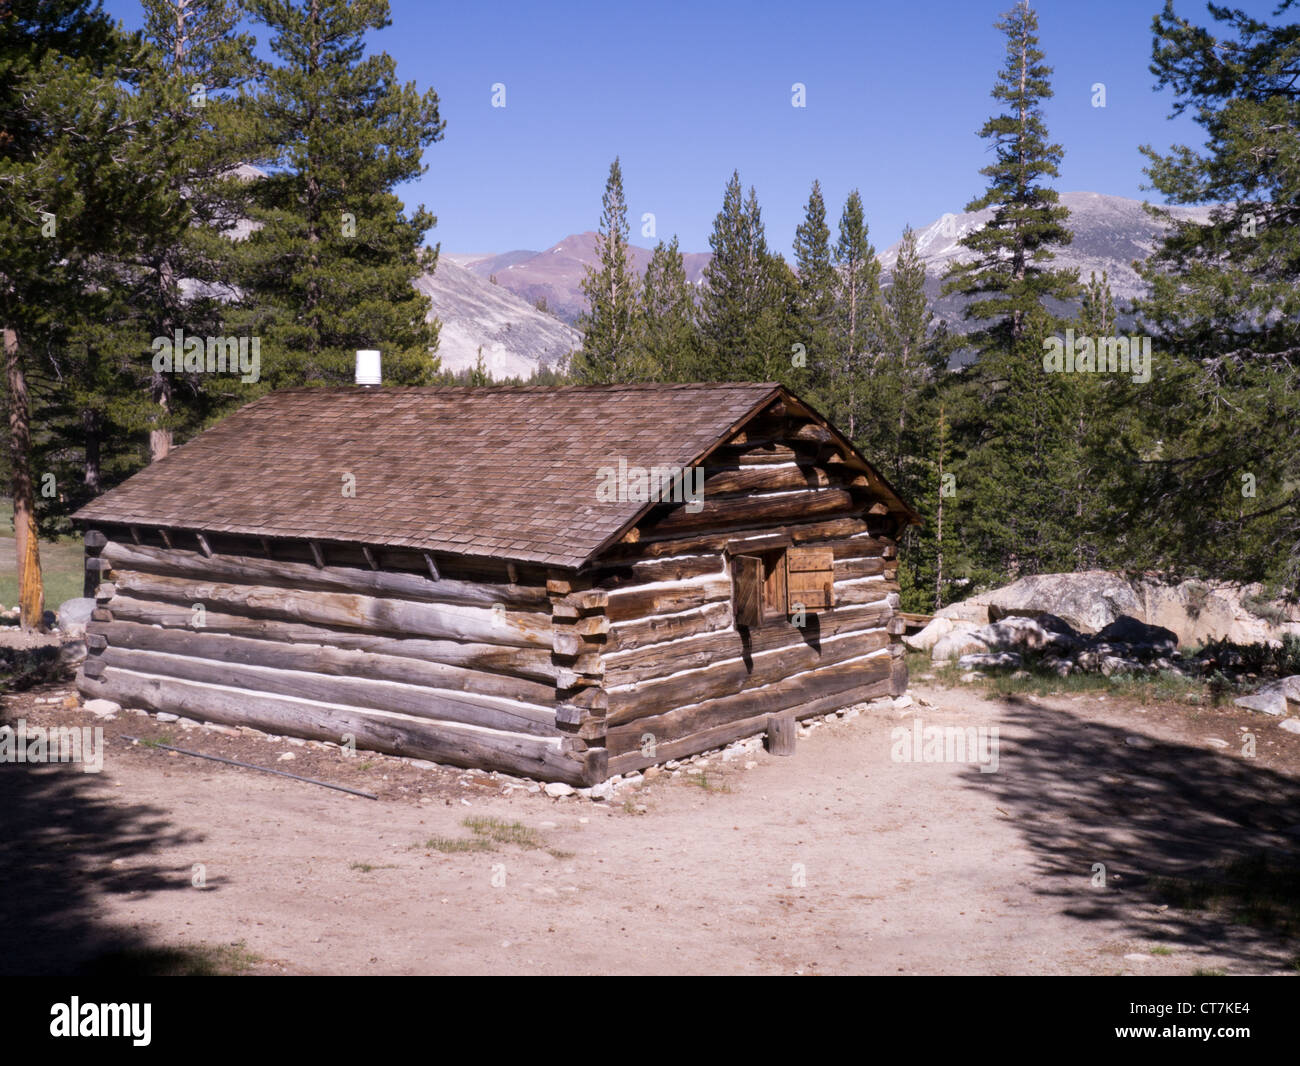 McCauley Cabin In Tuolumne Meadows Part Of The Yosemite National Park